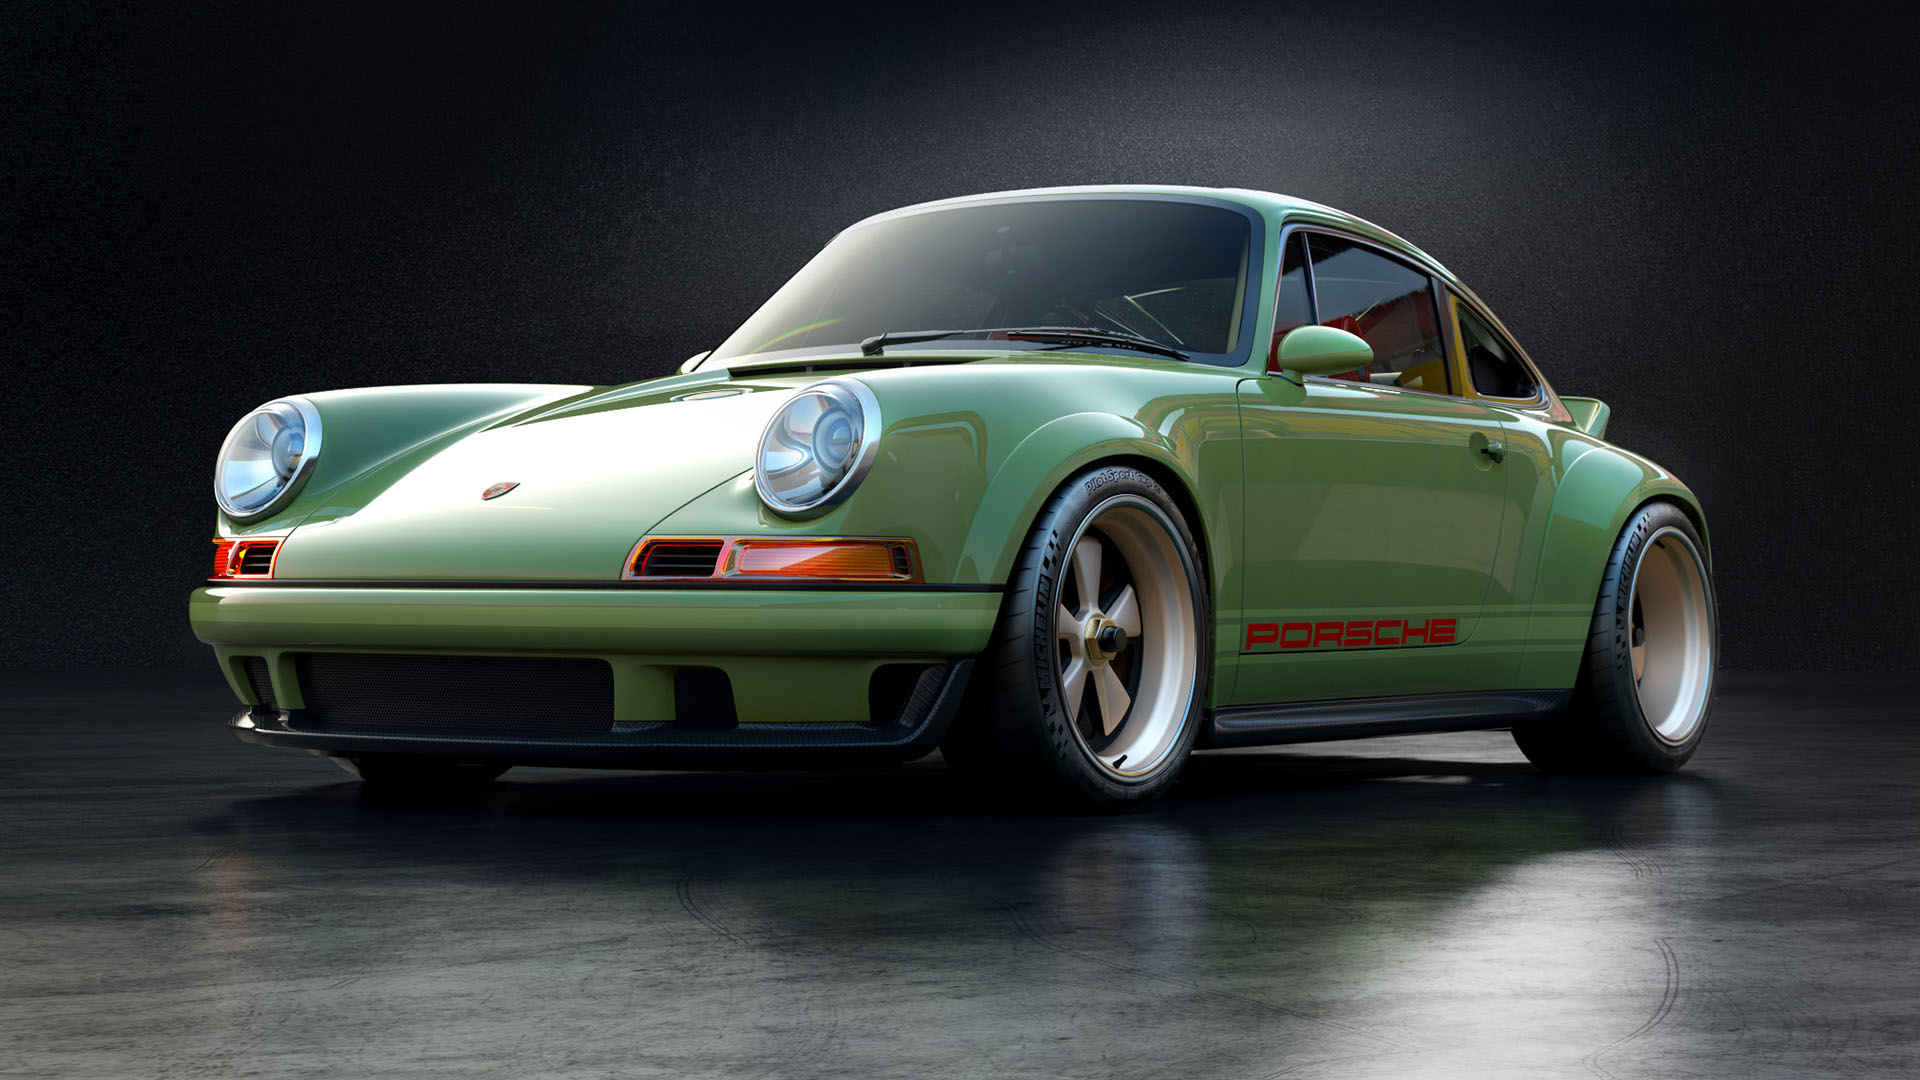 singer porsche 964 with a 500 hp air cooled flat six engine swap depot. Black Bedroom Furniture Sets. Home Design Ideas